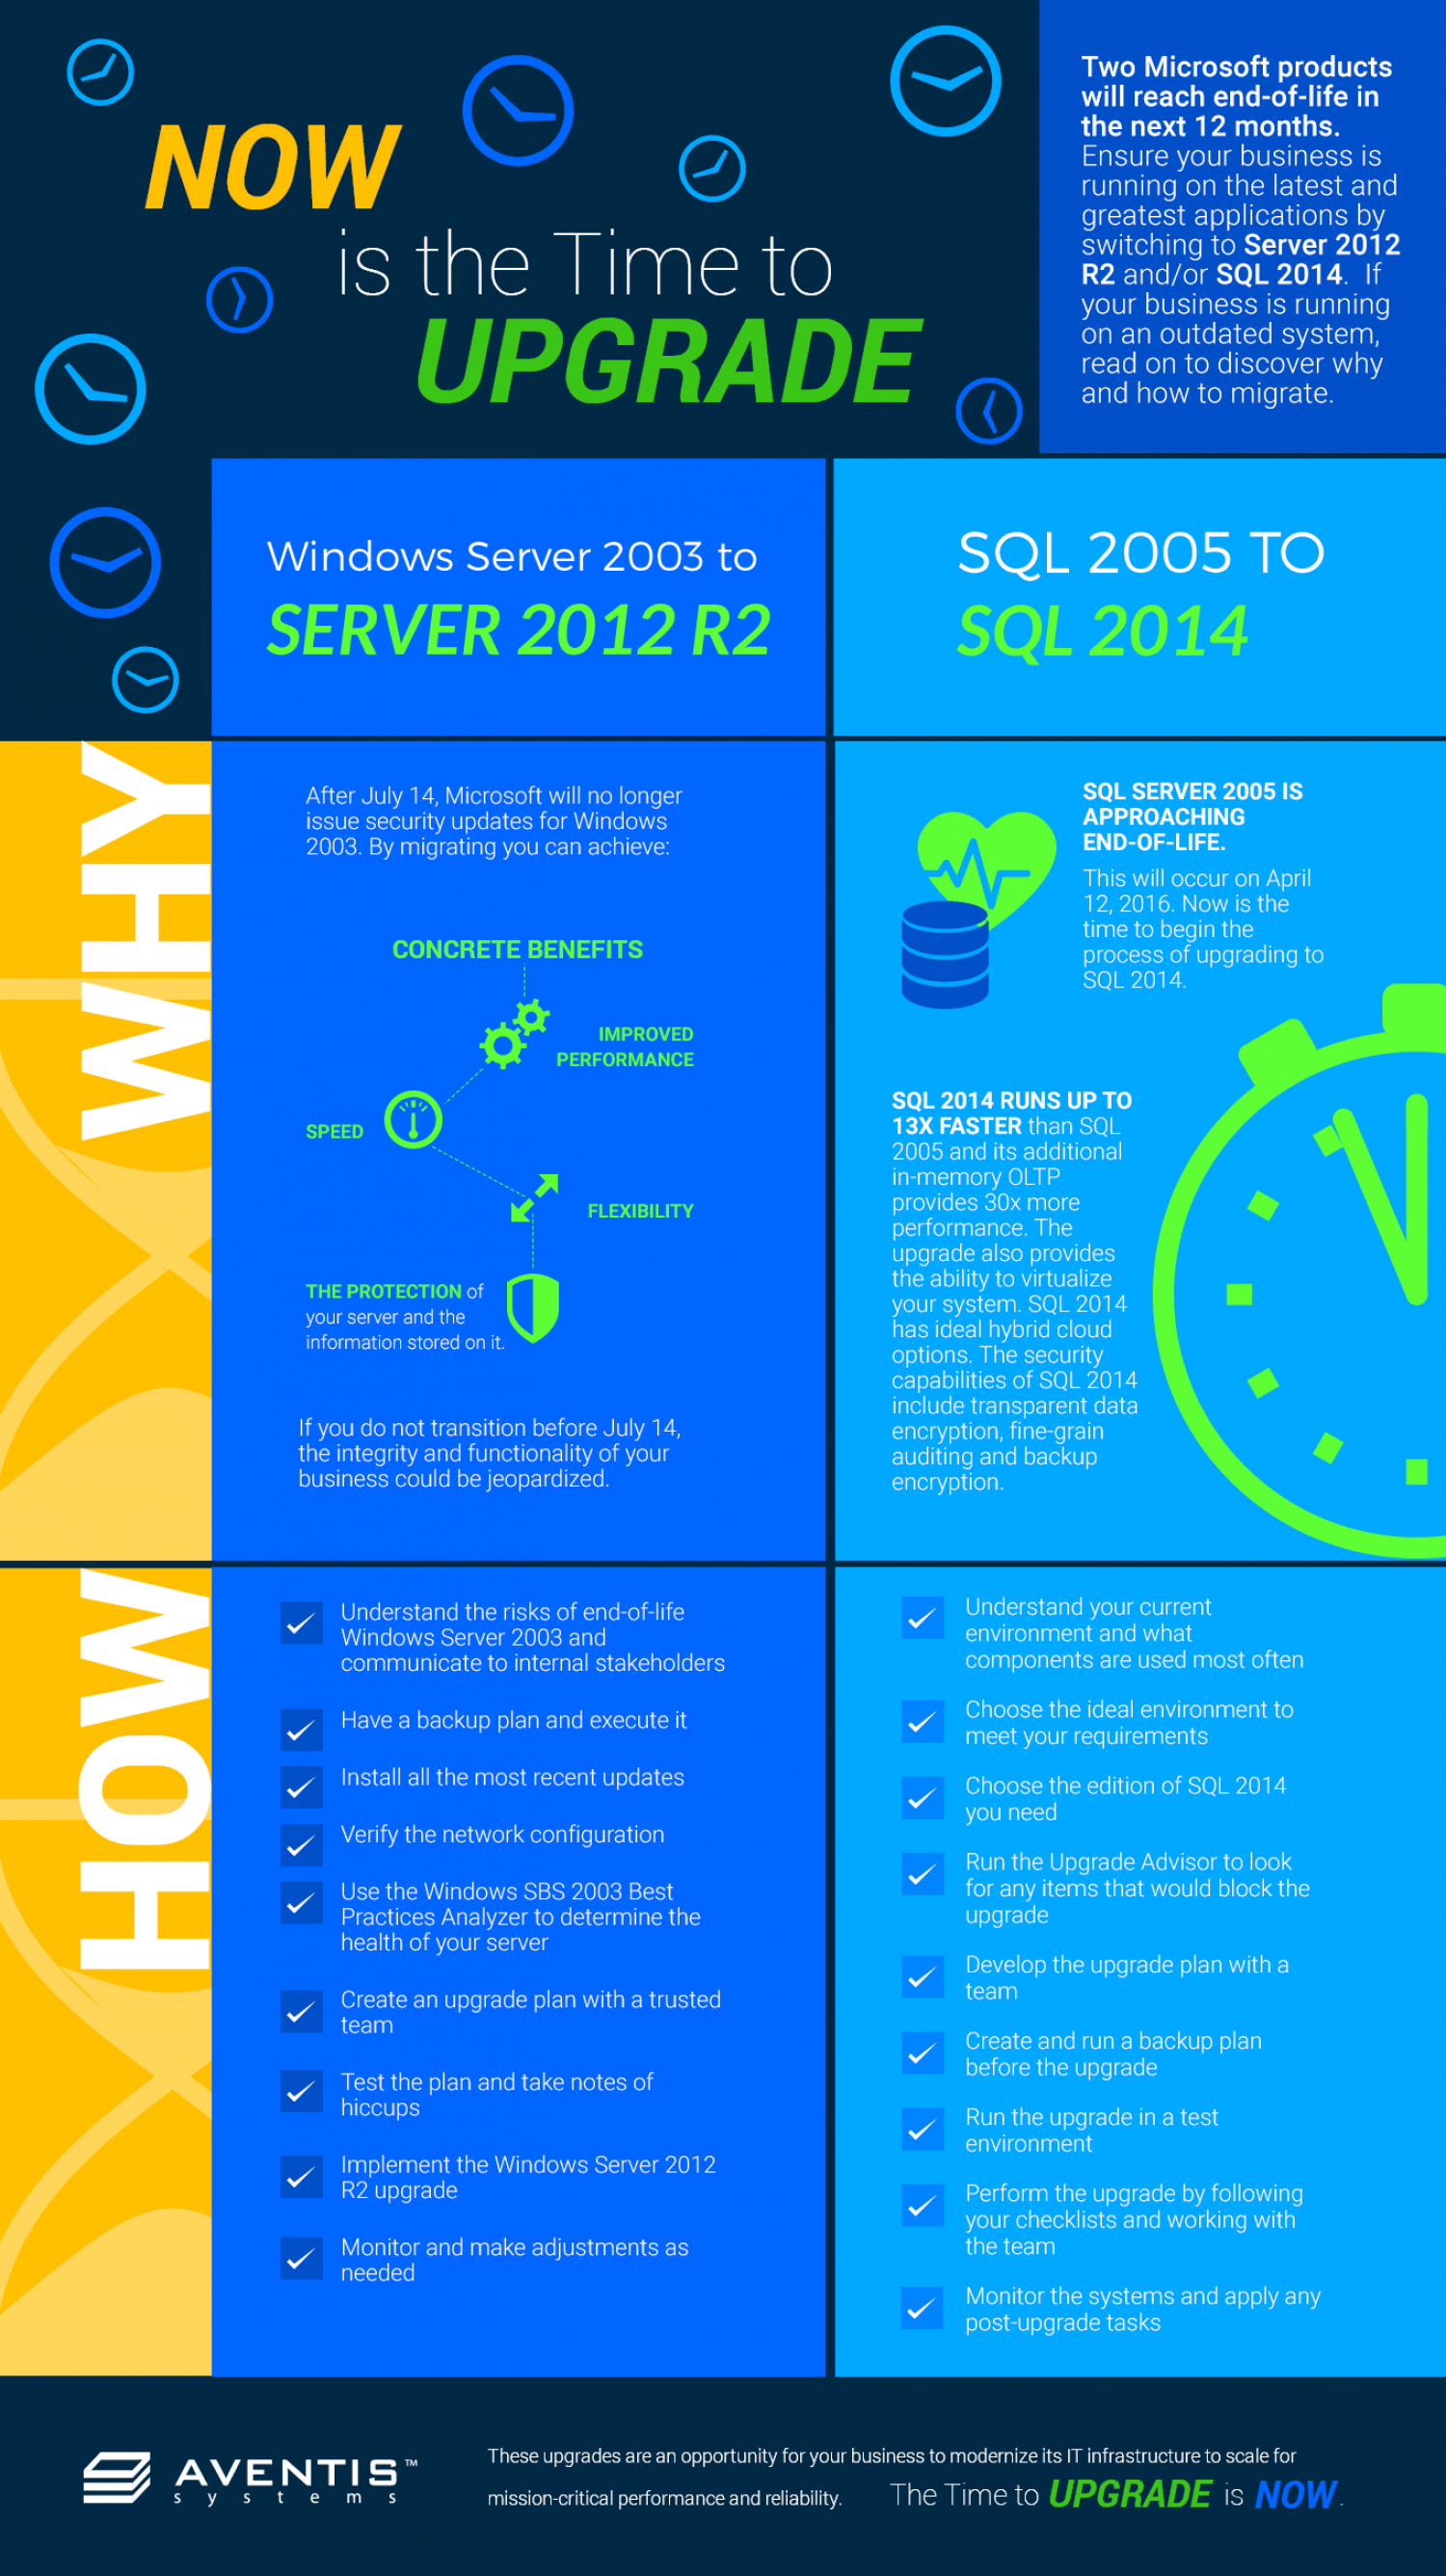 Now is the Time to Upgrade Your Windows 2003 and Micrsoft SQL 2005 Infographic